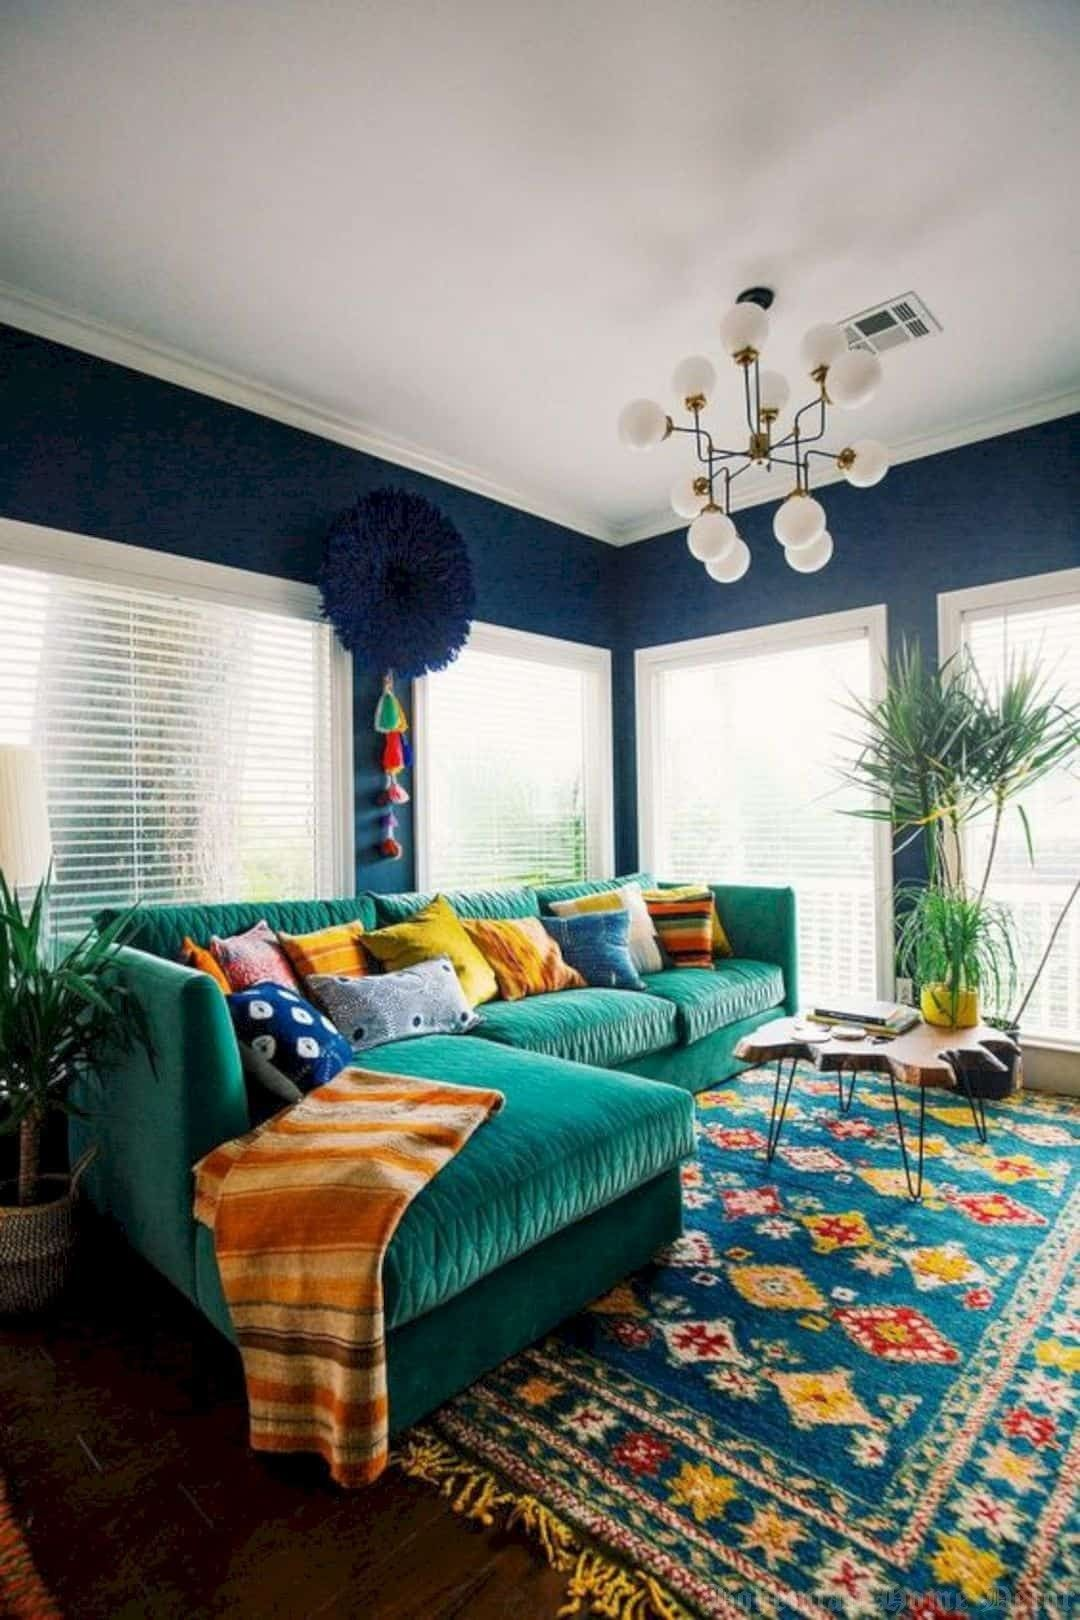 Top 10 Tips To Grow Your Bohemian Home Decor Oct 2020